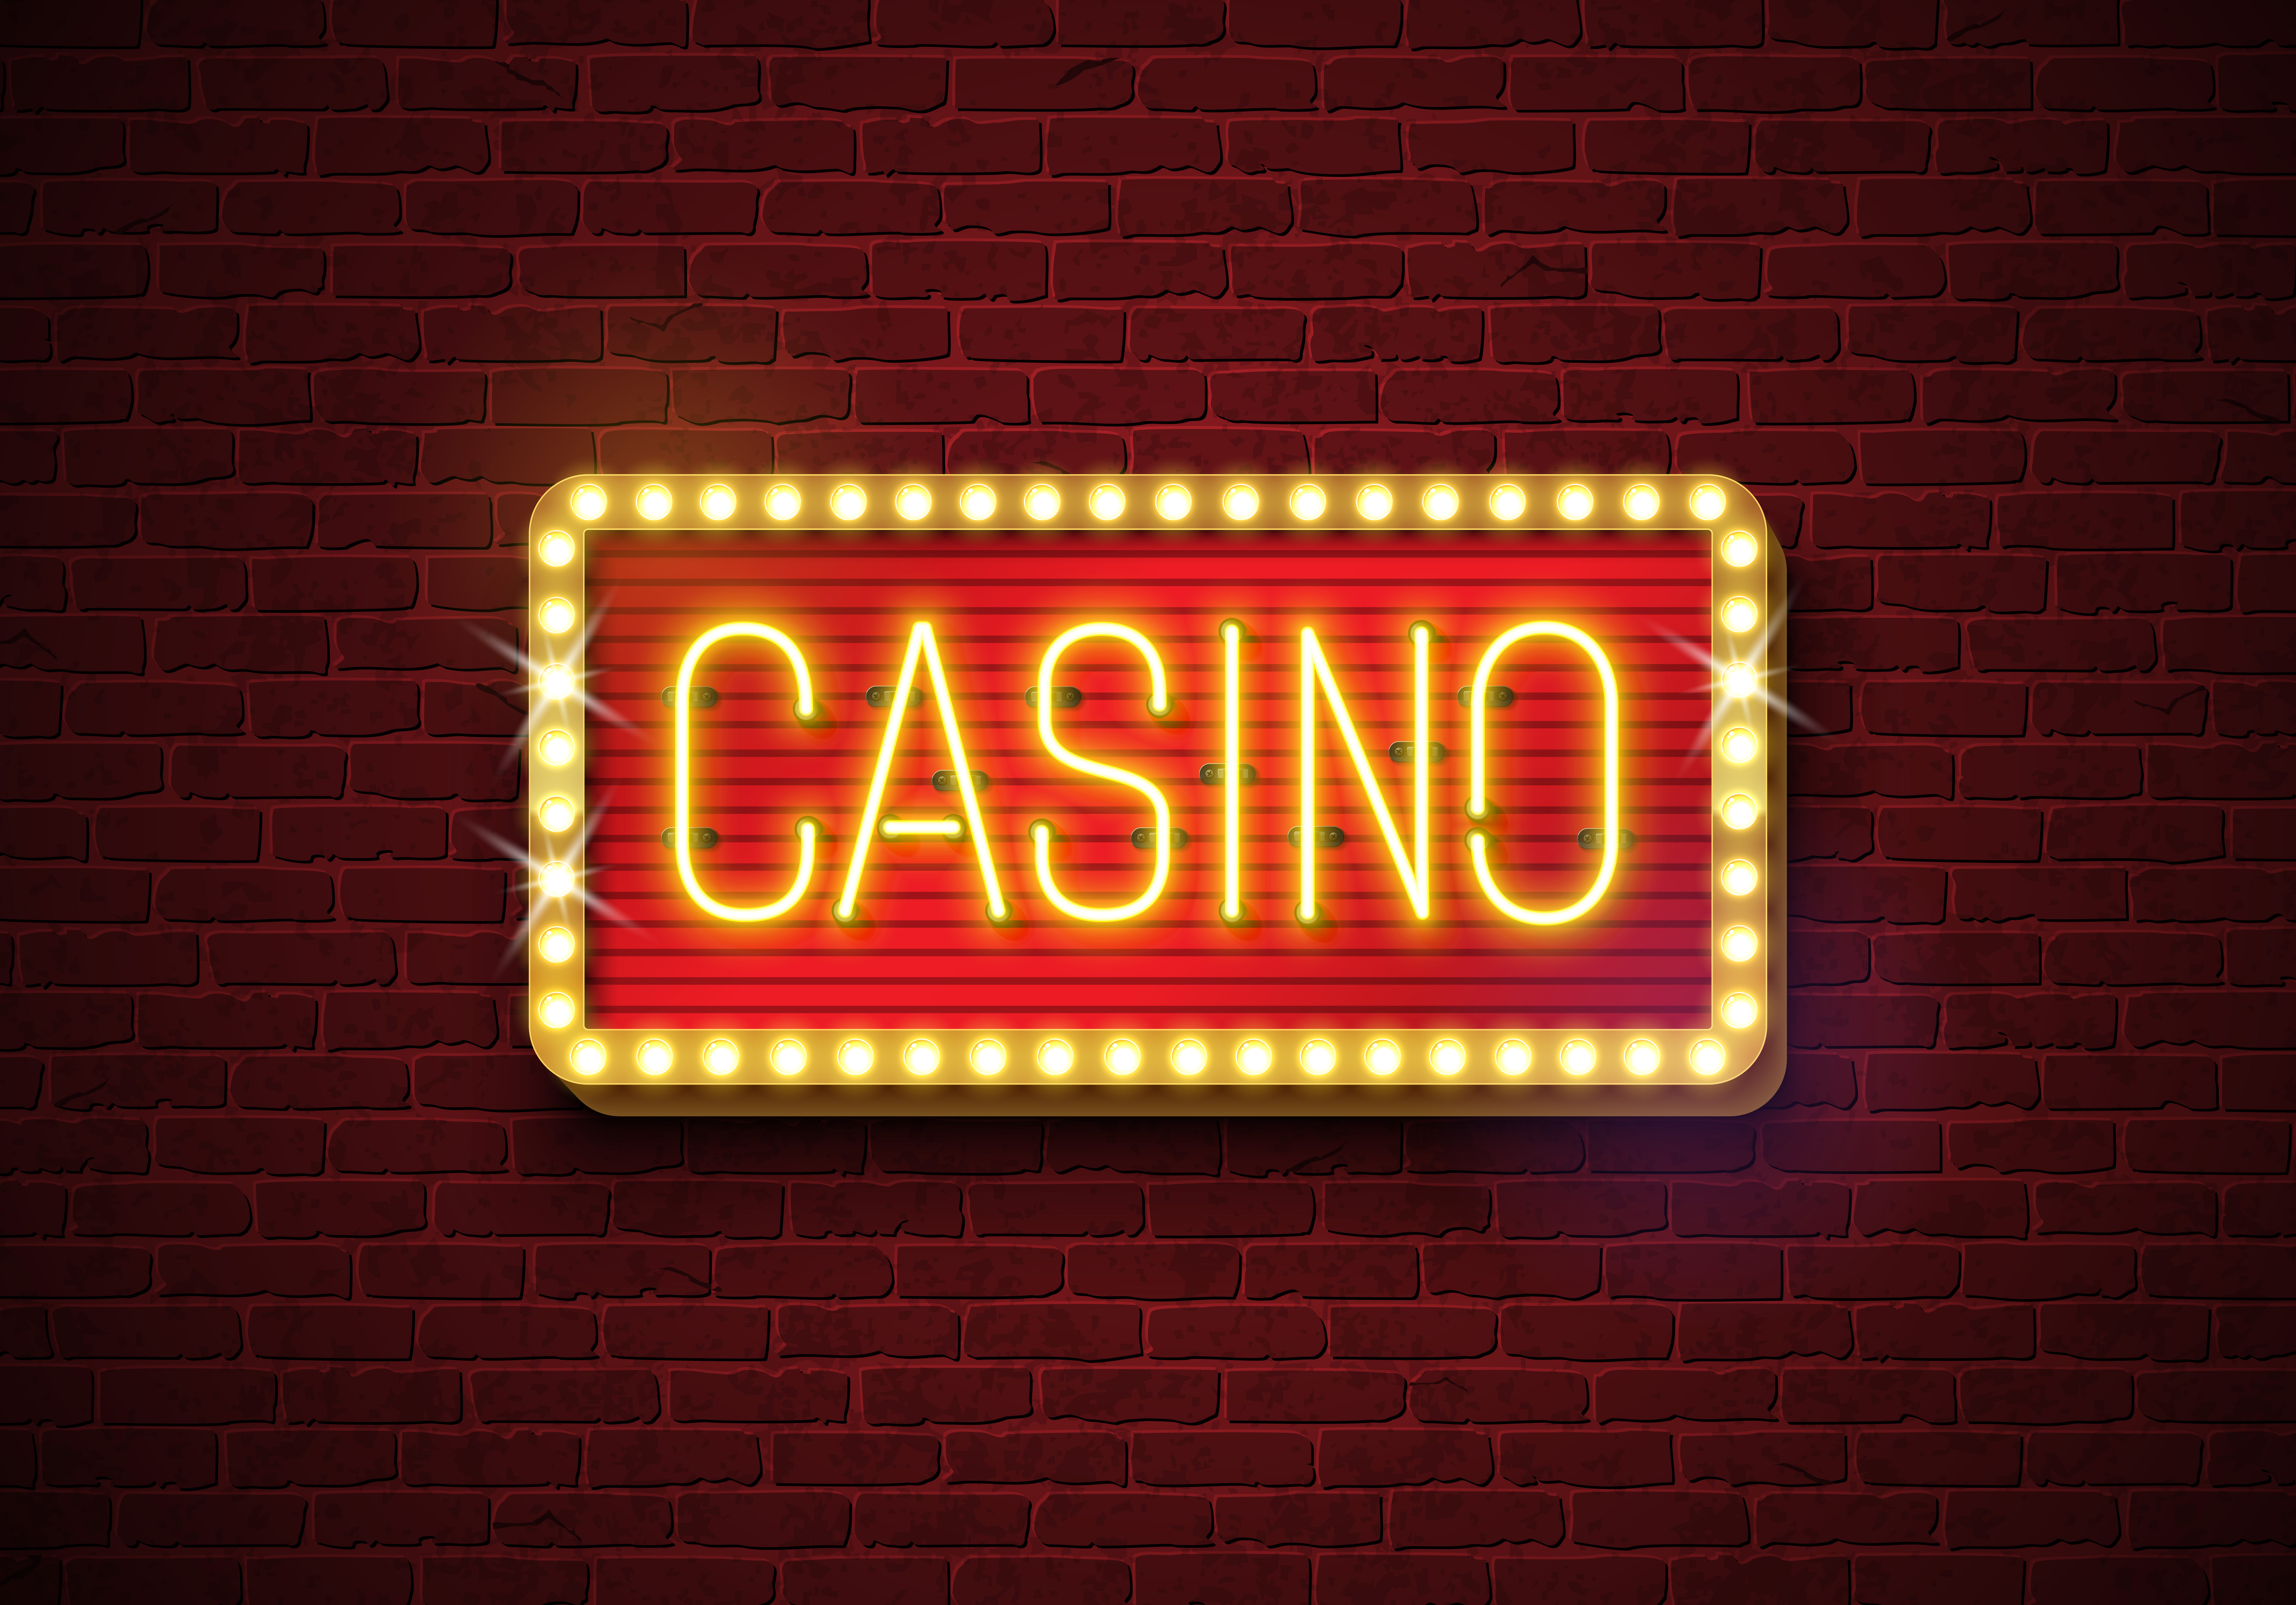 Casino Neon Sign Illustration On Brick Wall Background